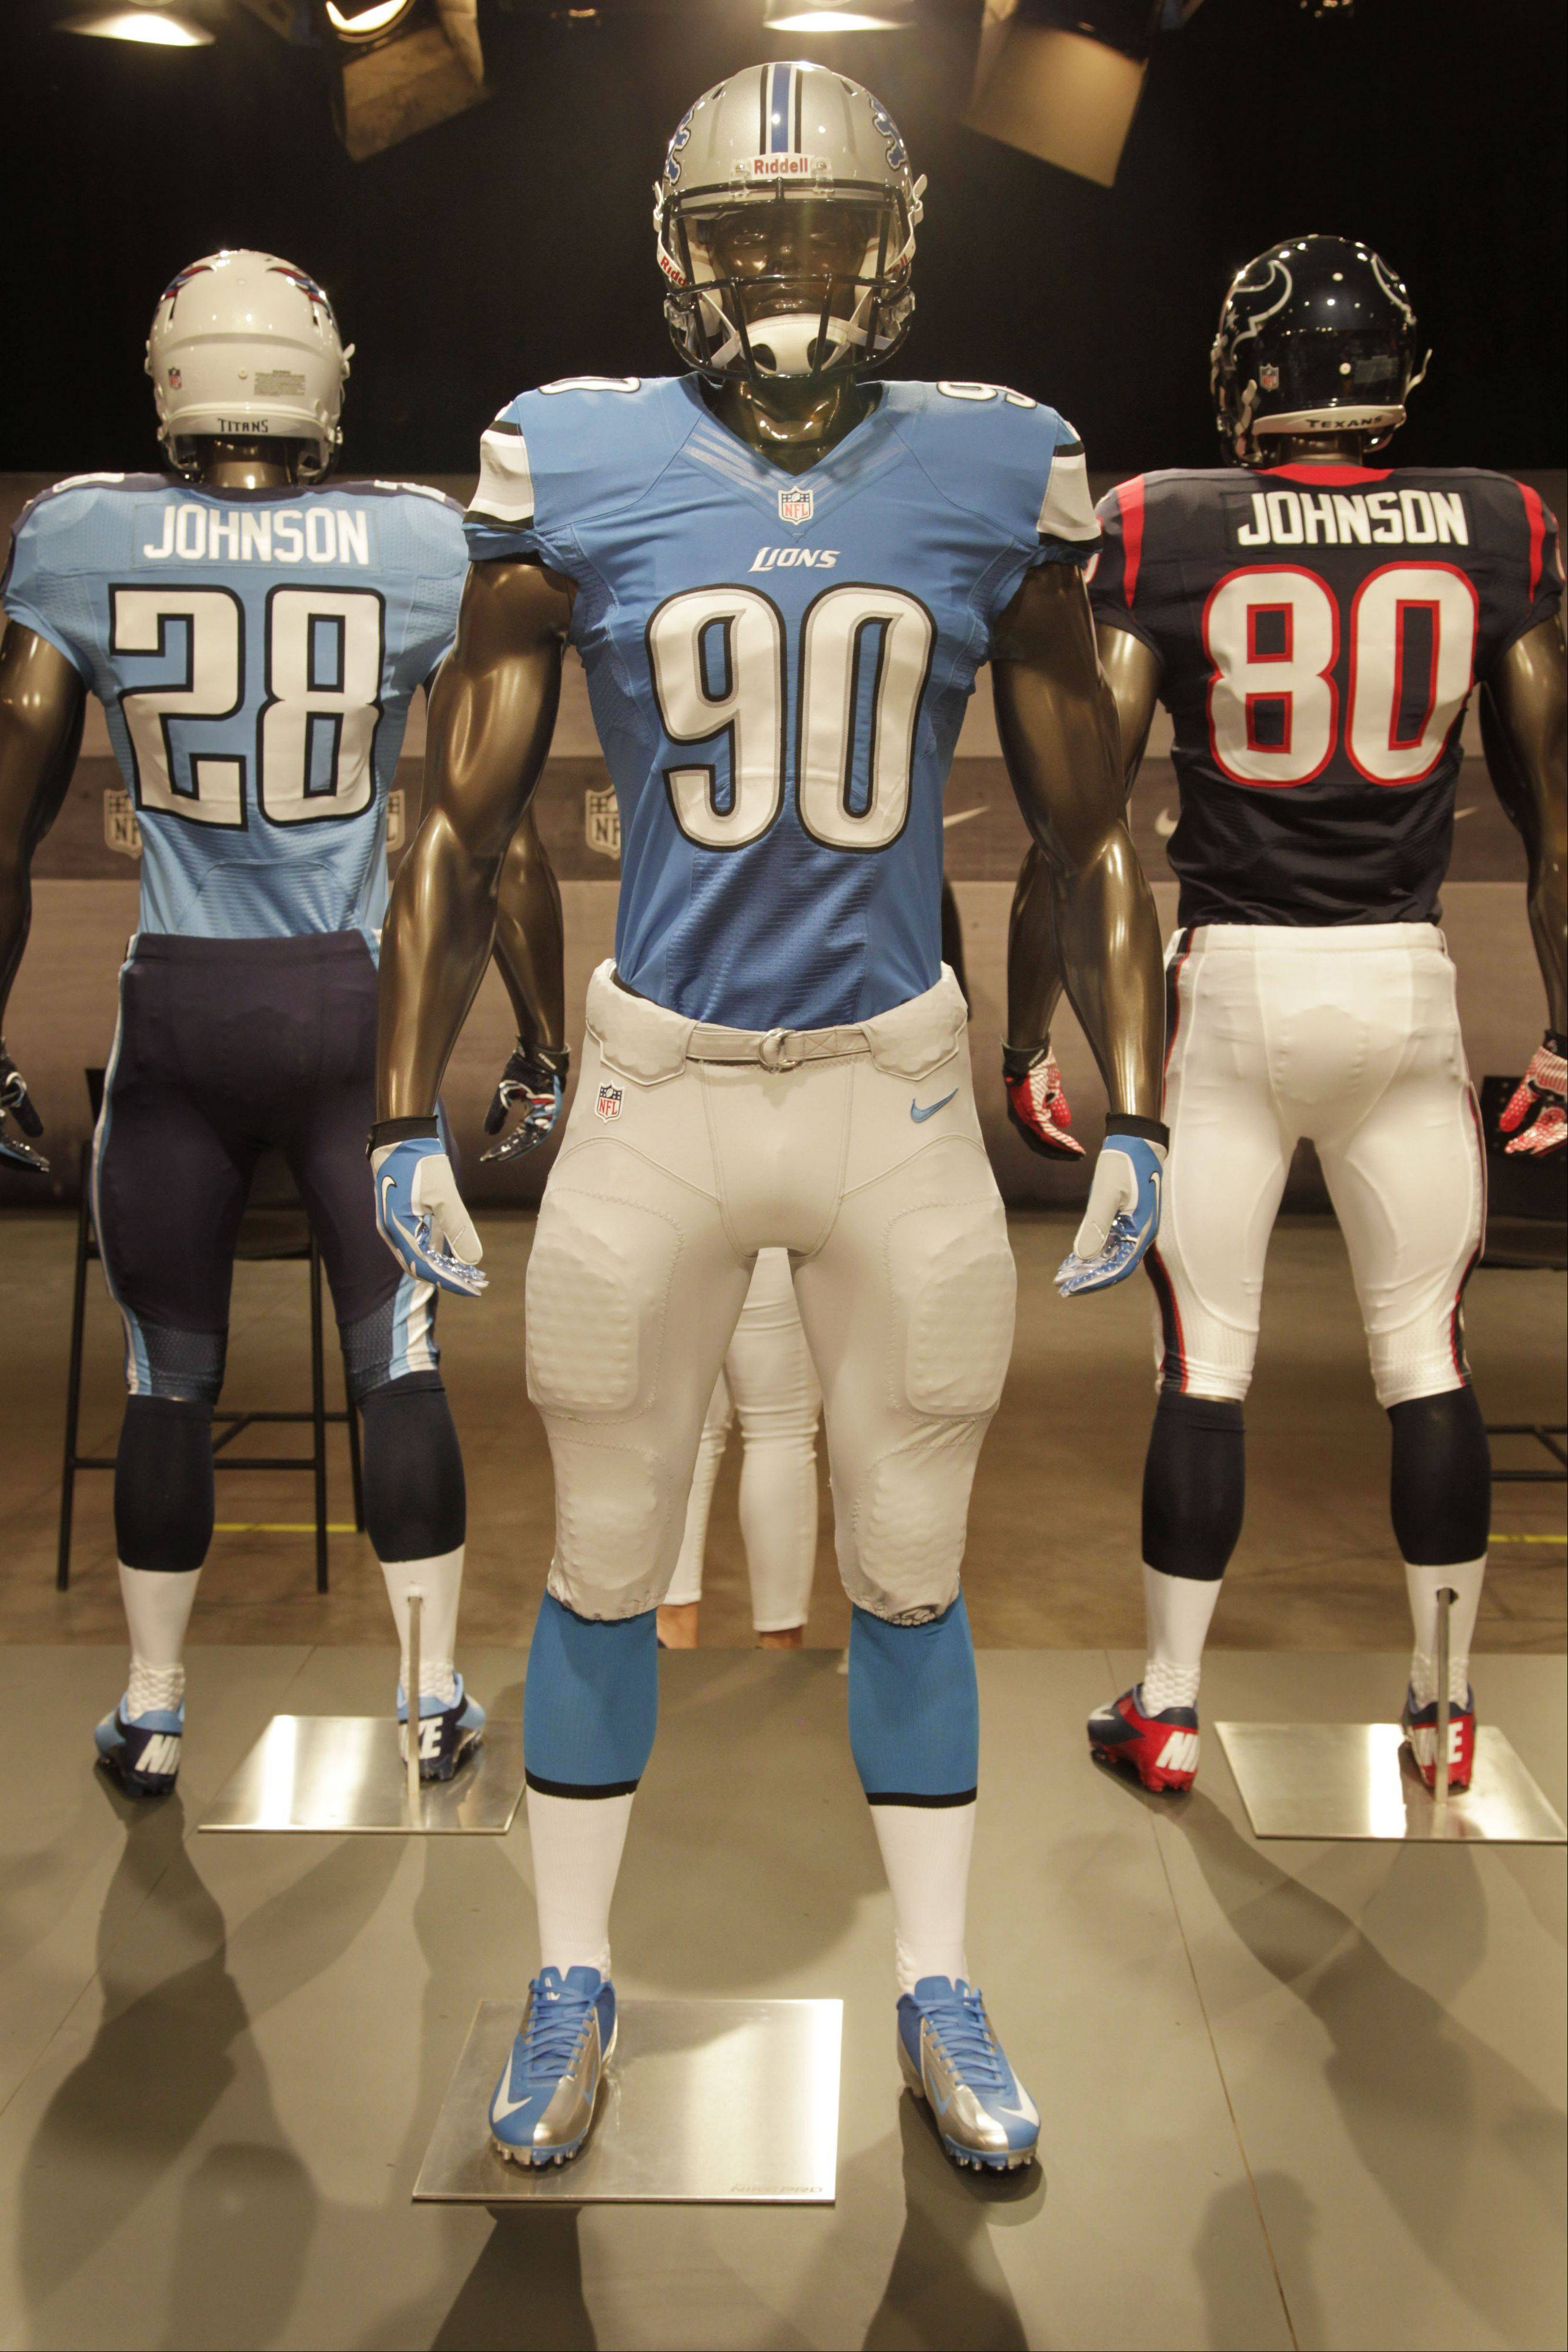 The new Detroit Lions uniform is displayed on a mannequin in New York, Tuesday, April 3, 2012. NFL has unveiled its new sleek uniforms designed by Nike. While most of the new uniforms are not very different visually, they all are made with new technology that make them lighter, dryer and more comfortable.